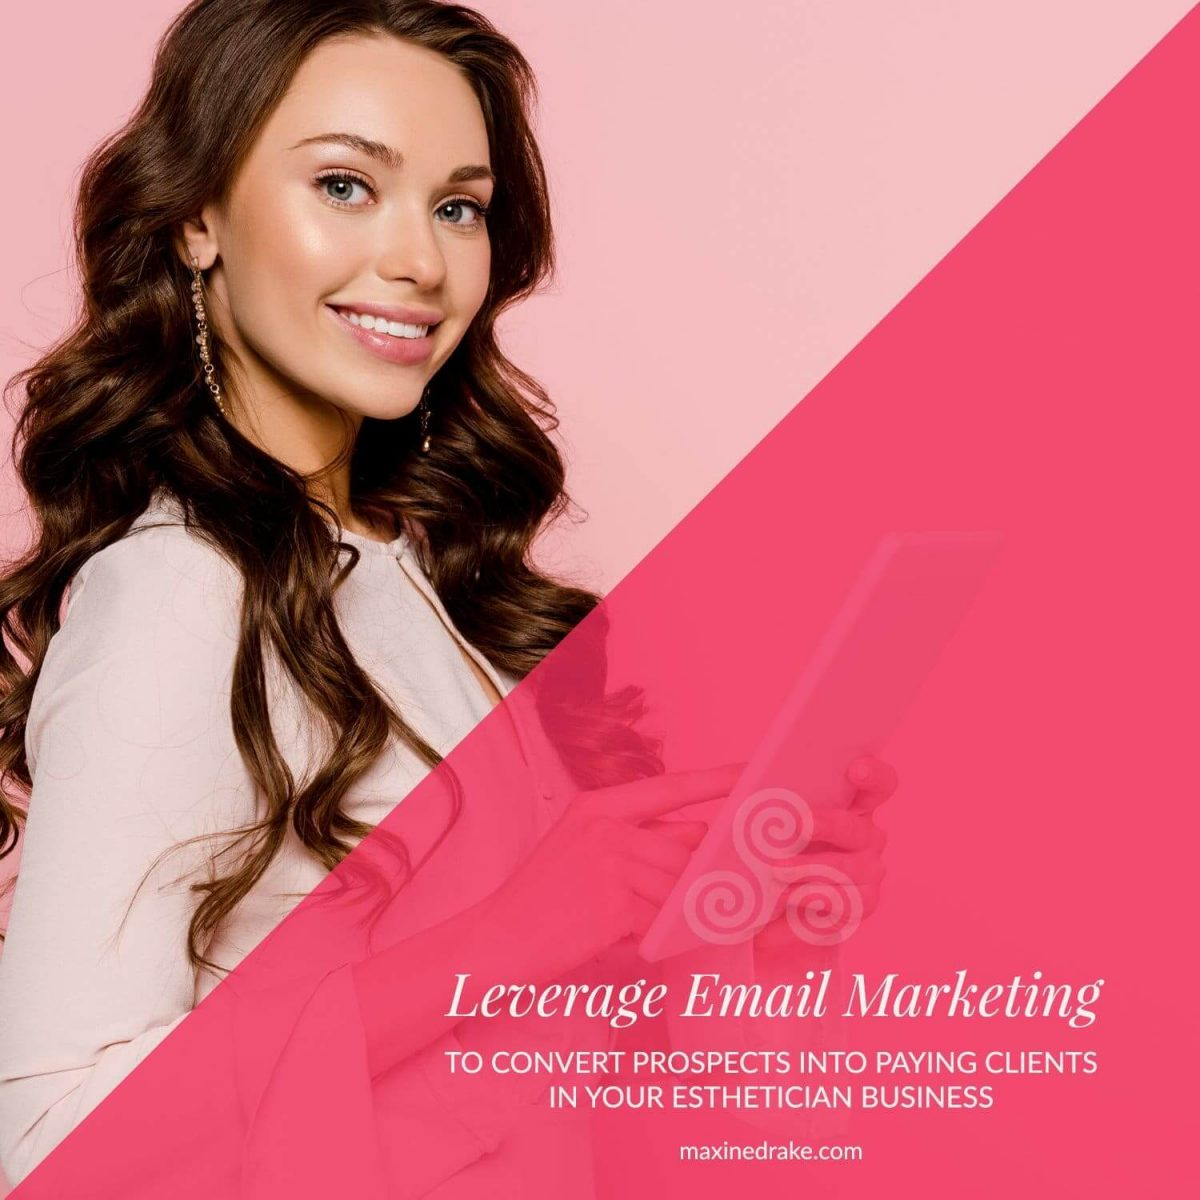 Leverage email marketing to convert prospects into paying clients in your esthetician business